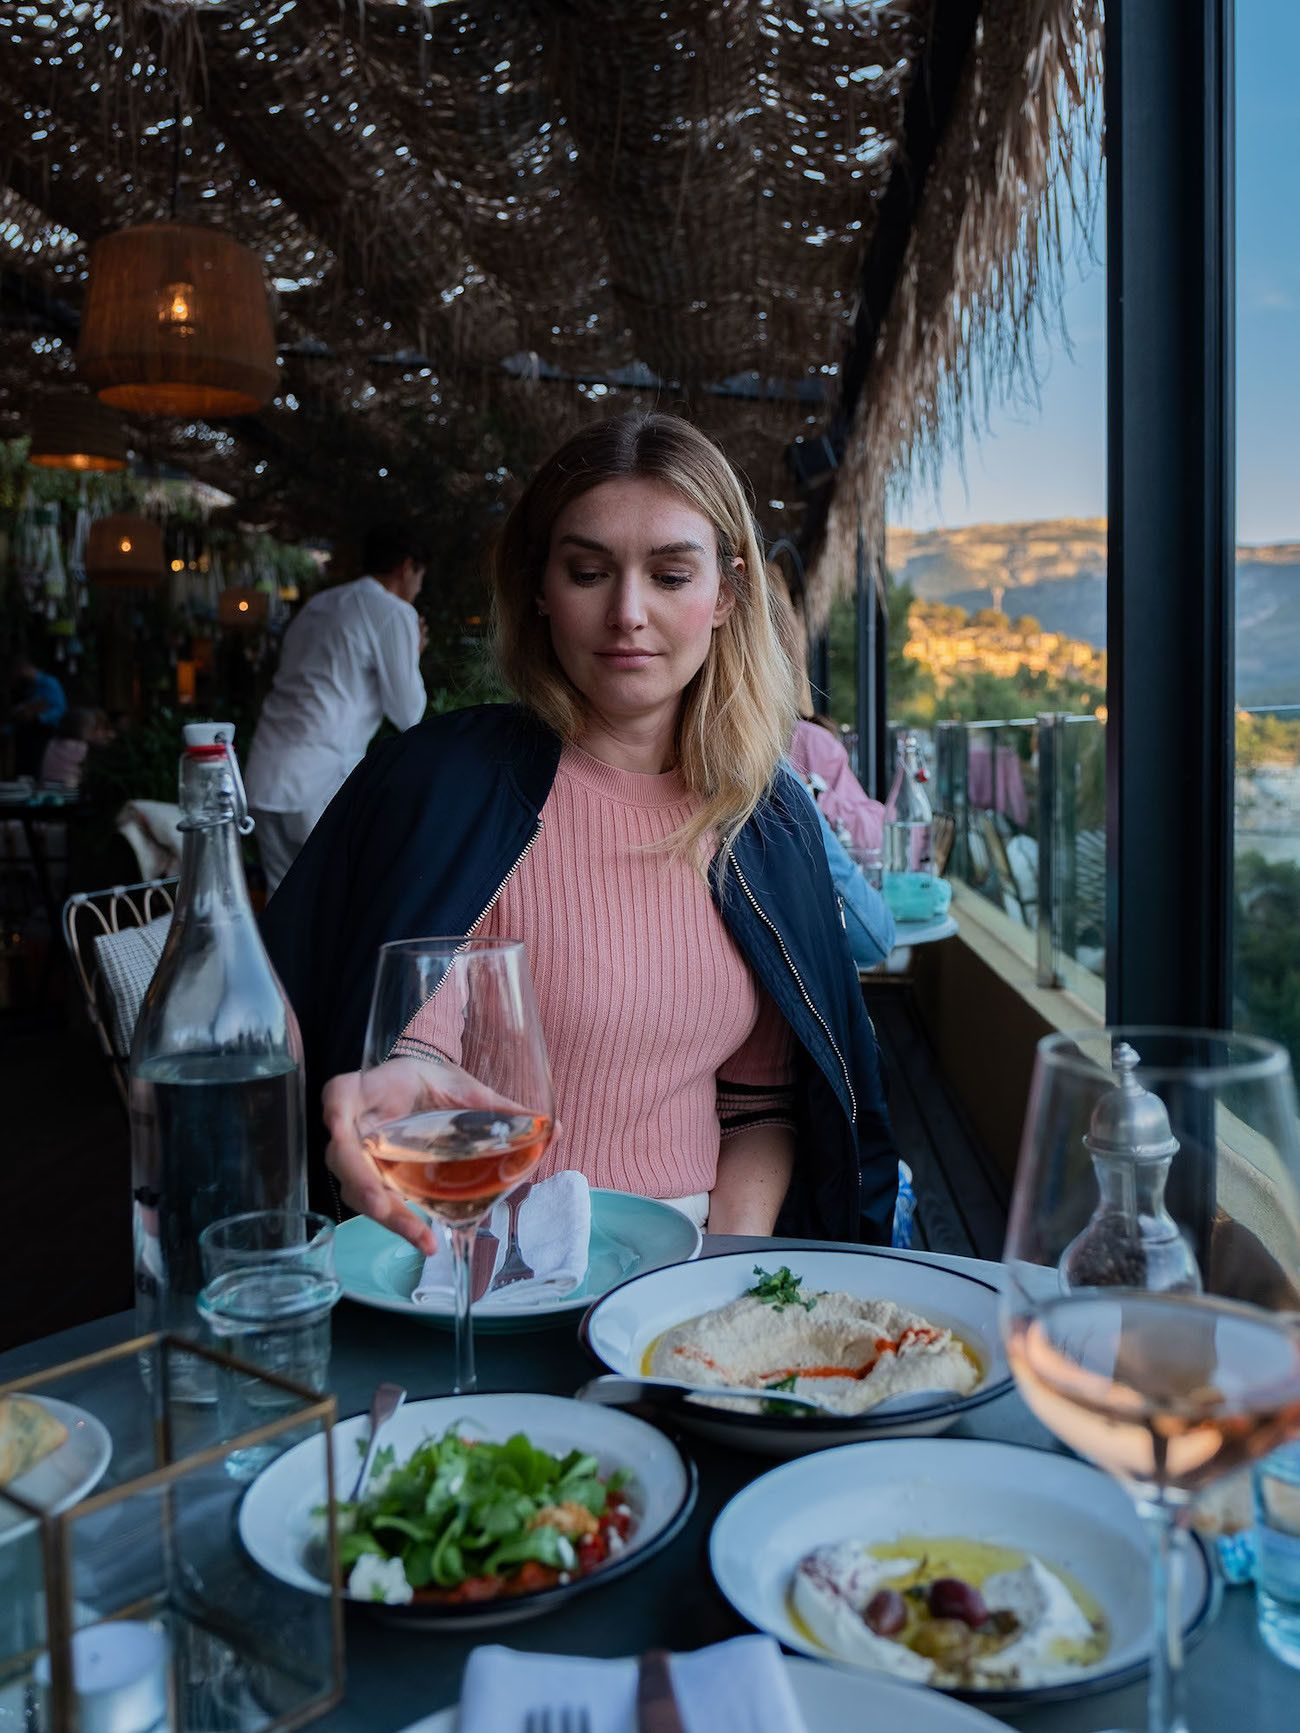 Foodblog About Fuel, Bikini Island & Mountain Hotels, Elina, Wein, Dinner